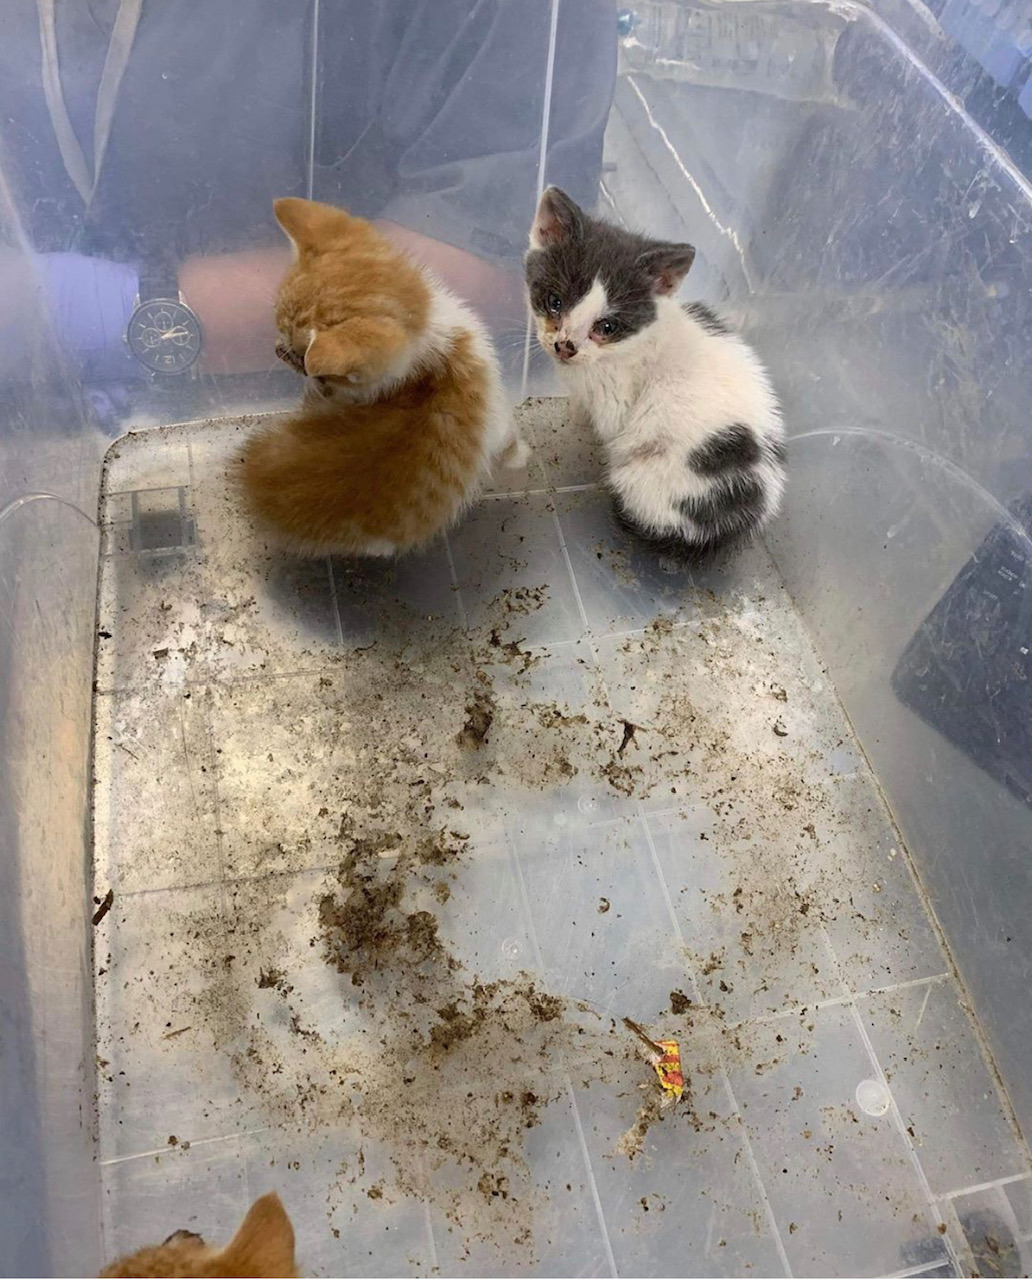 Disfigured kittens found in a 'terrible state' dumped in box